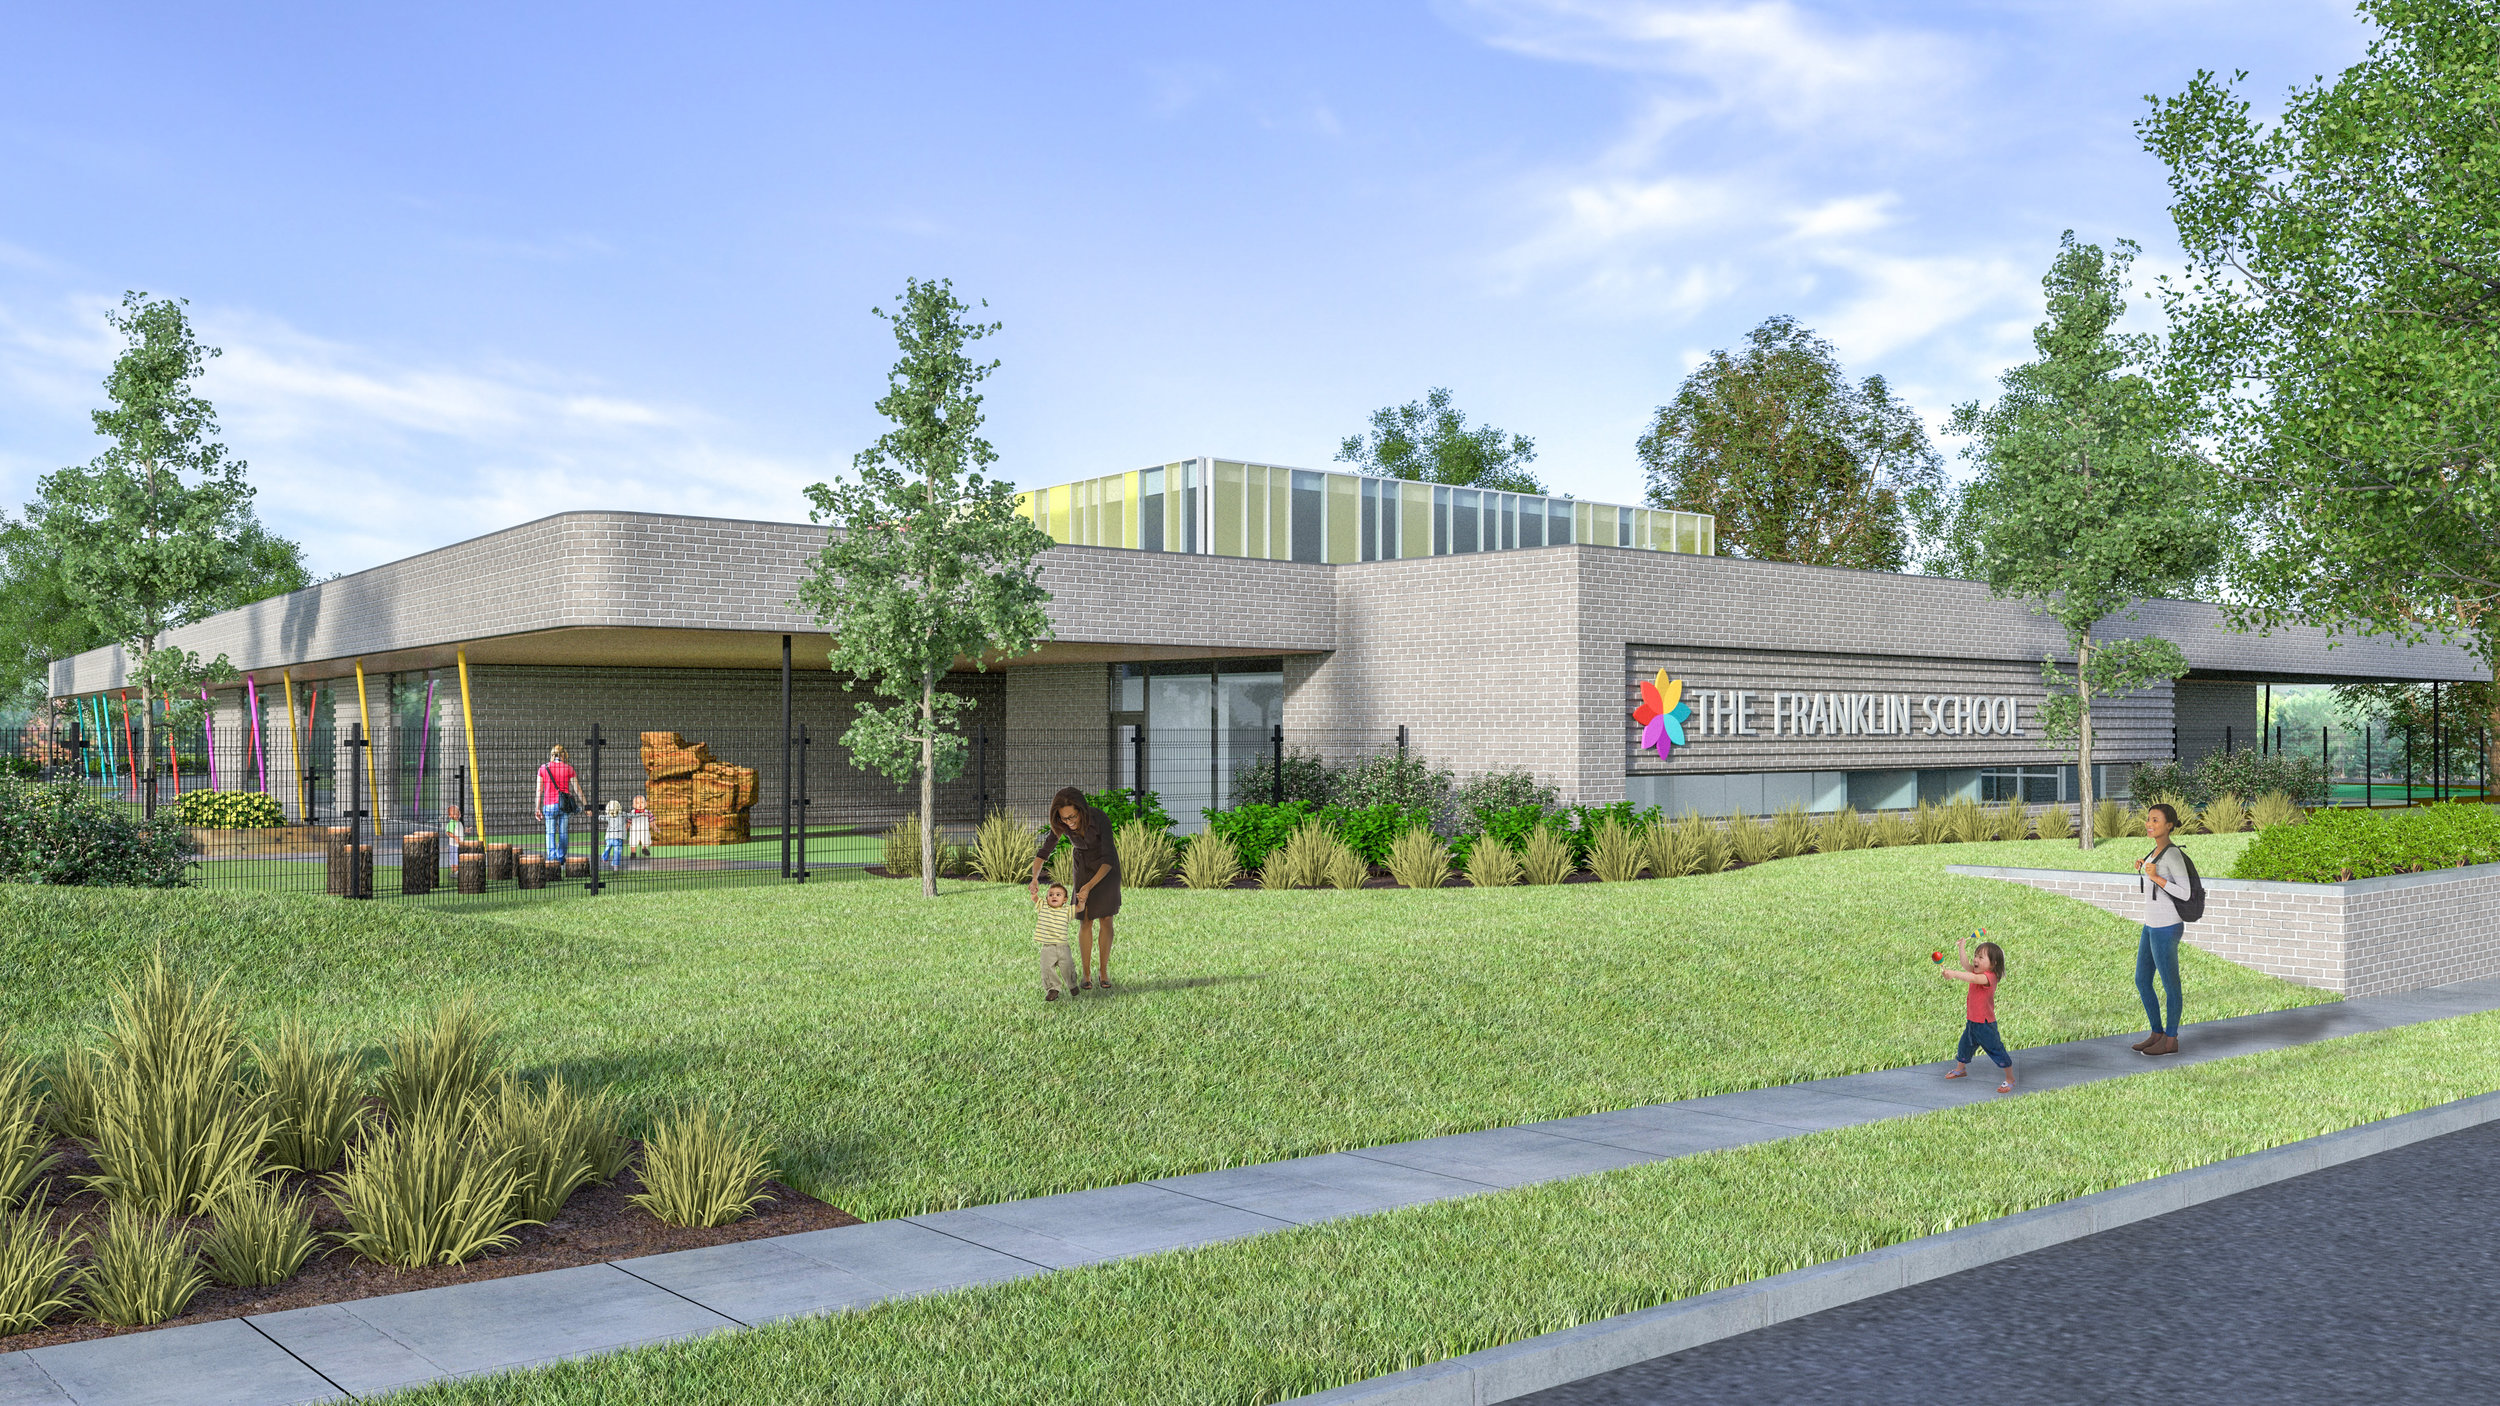 Groups unveil The Franklin School for city's Northside